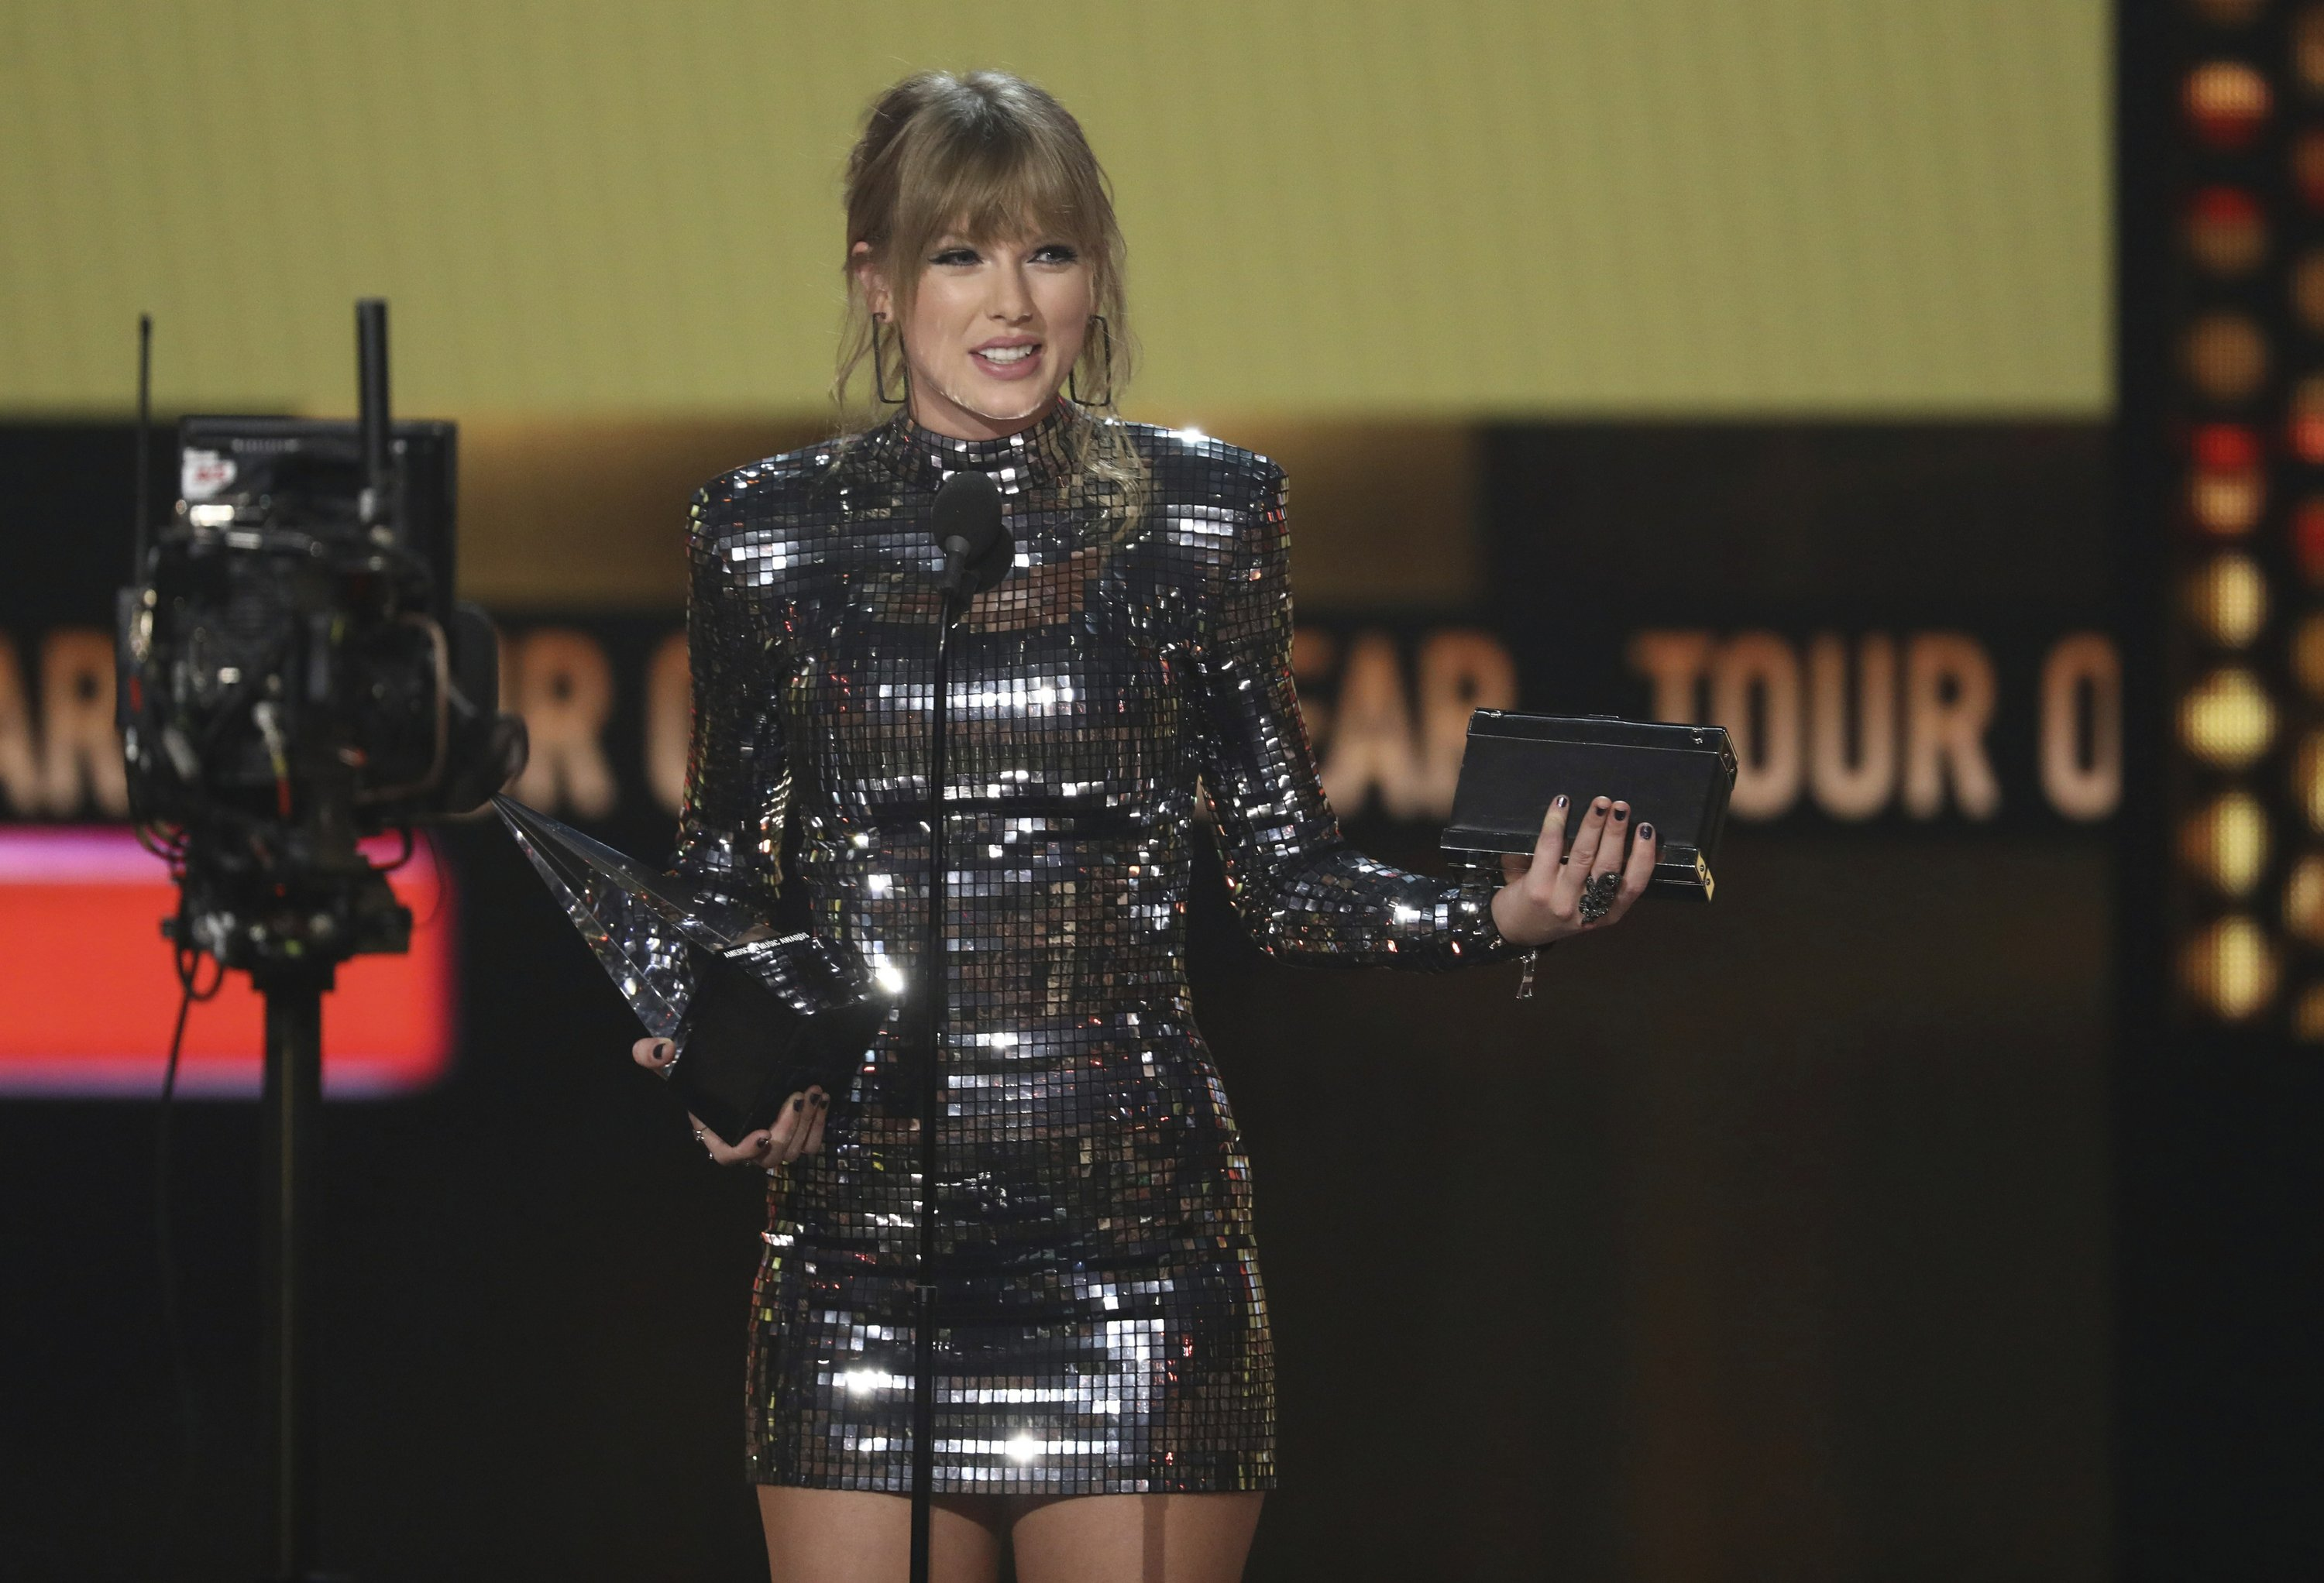 Grammy Snubs And Other Interesting Facts